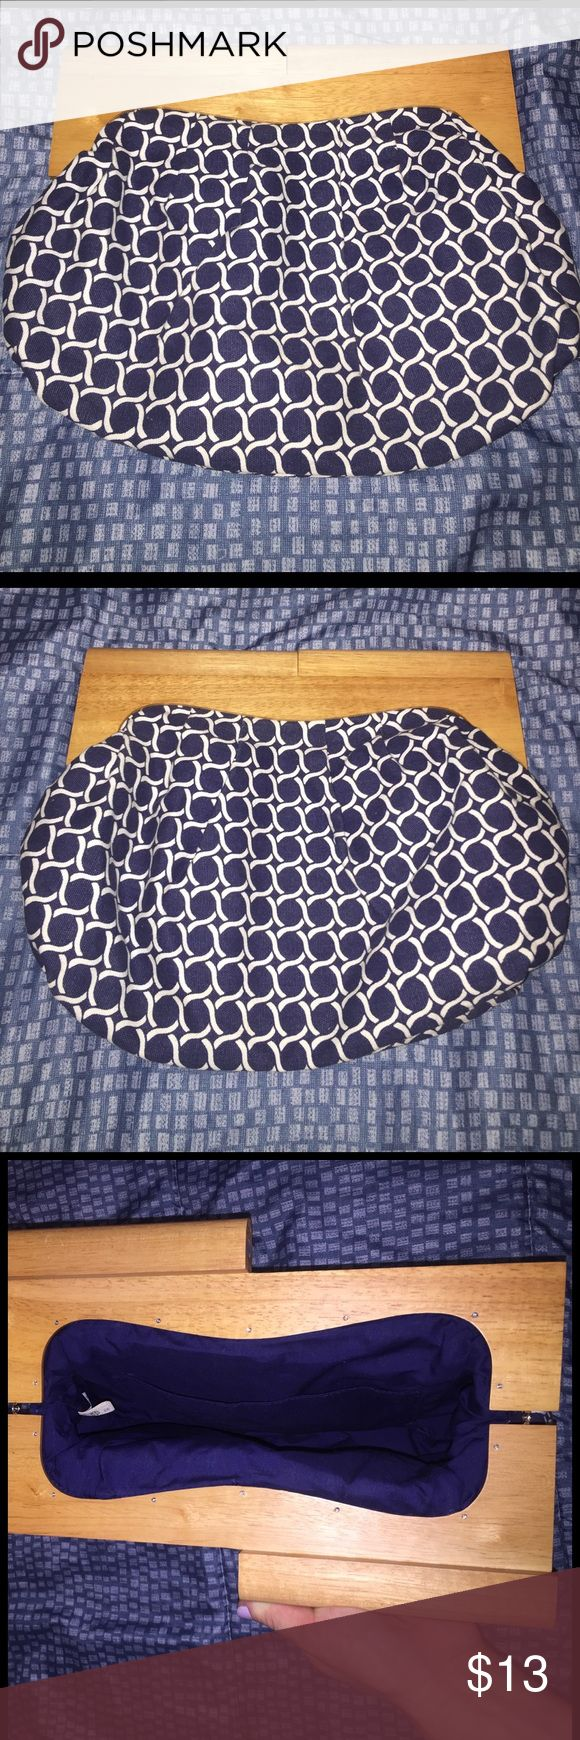 Cute navy and white clutch Excellent condition. Old Navy wooden handle clutch. Fabric is navy blue and white with nautical-type pattern. One big pocket inside bag, too. Spacious and holds a lot! Perfect for your spring wardrobe! Old Navy Bags Clutches & Wristlets